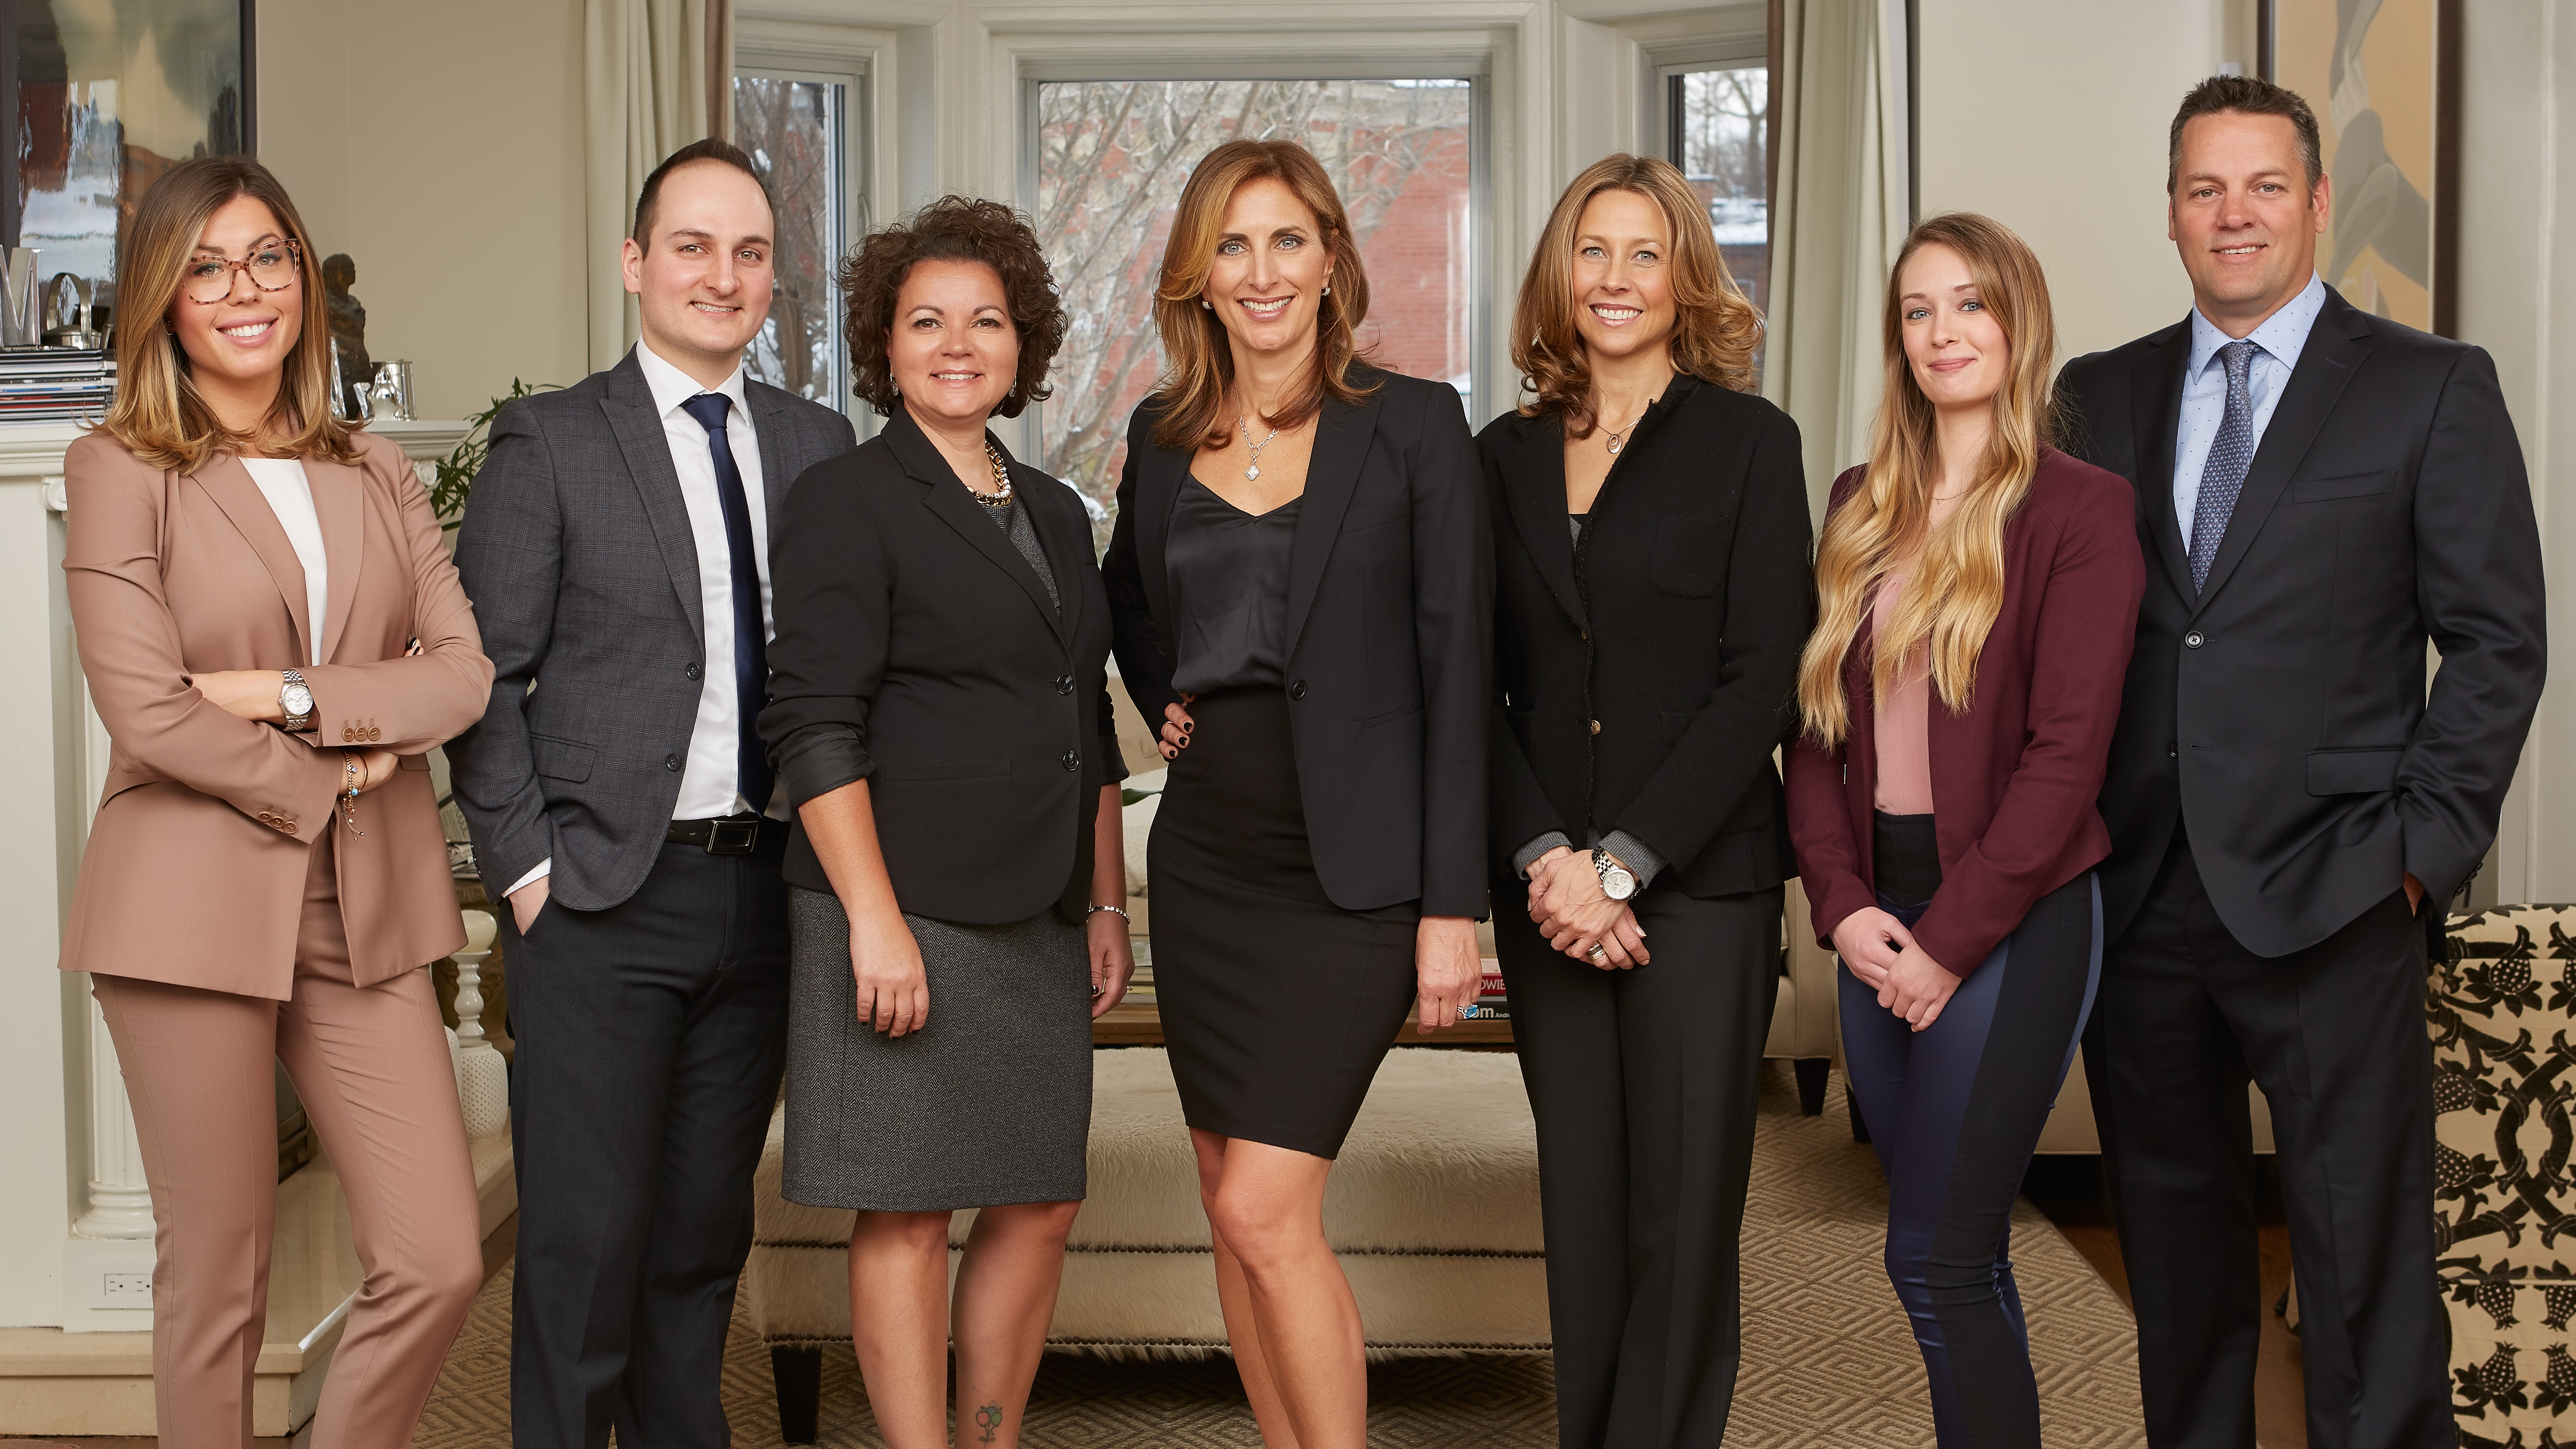 Christina_Miller_real estate Group_top westmount real estate agents team